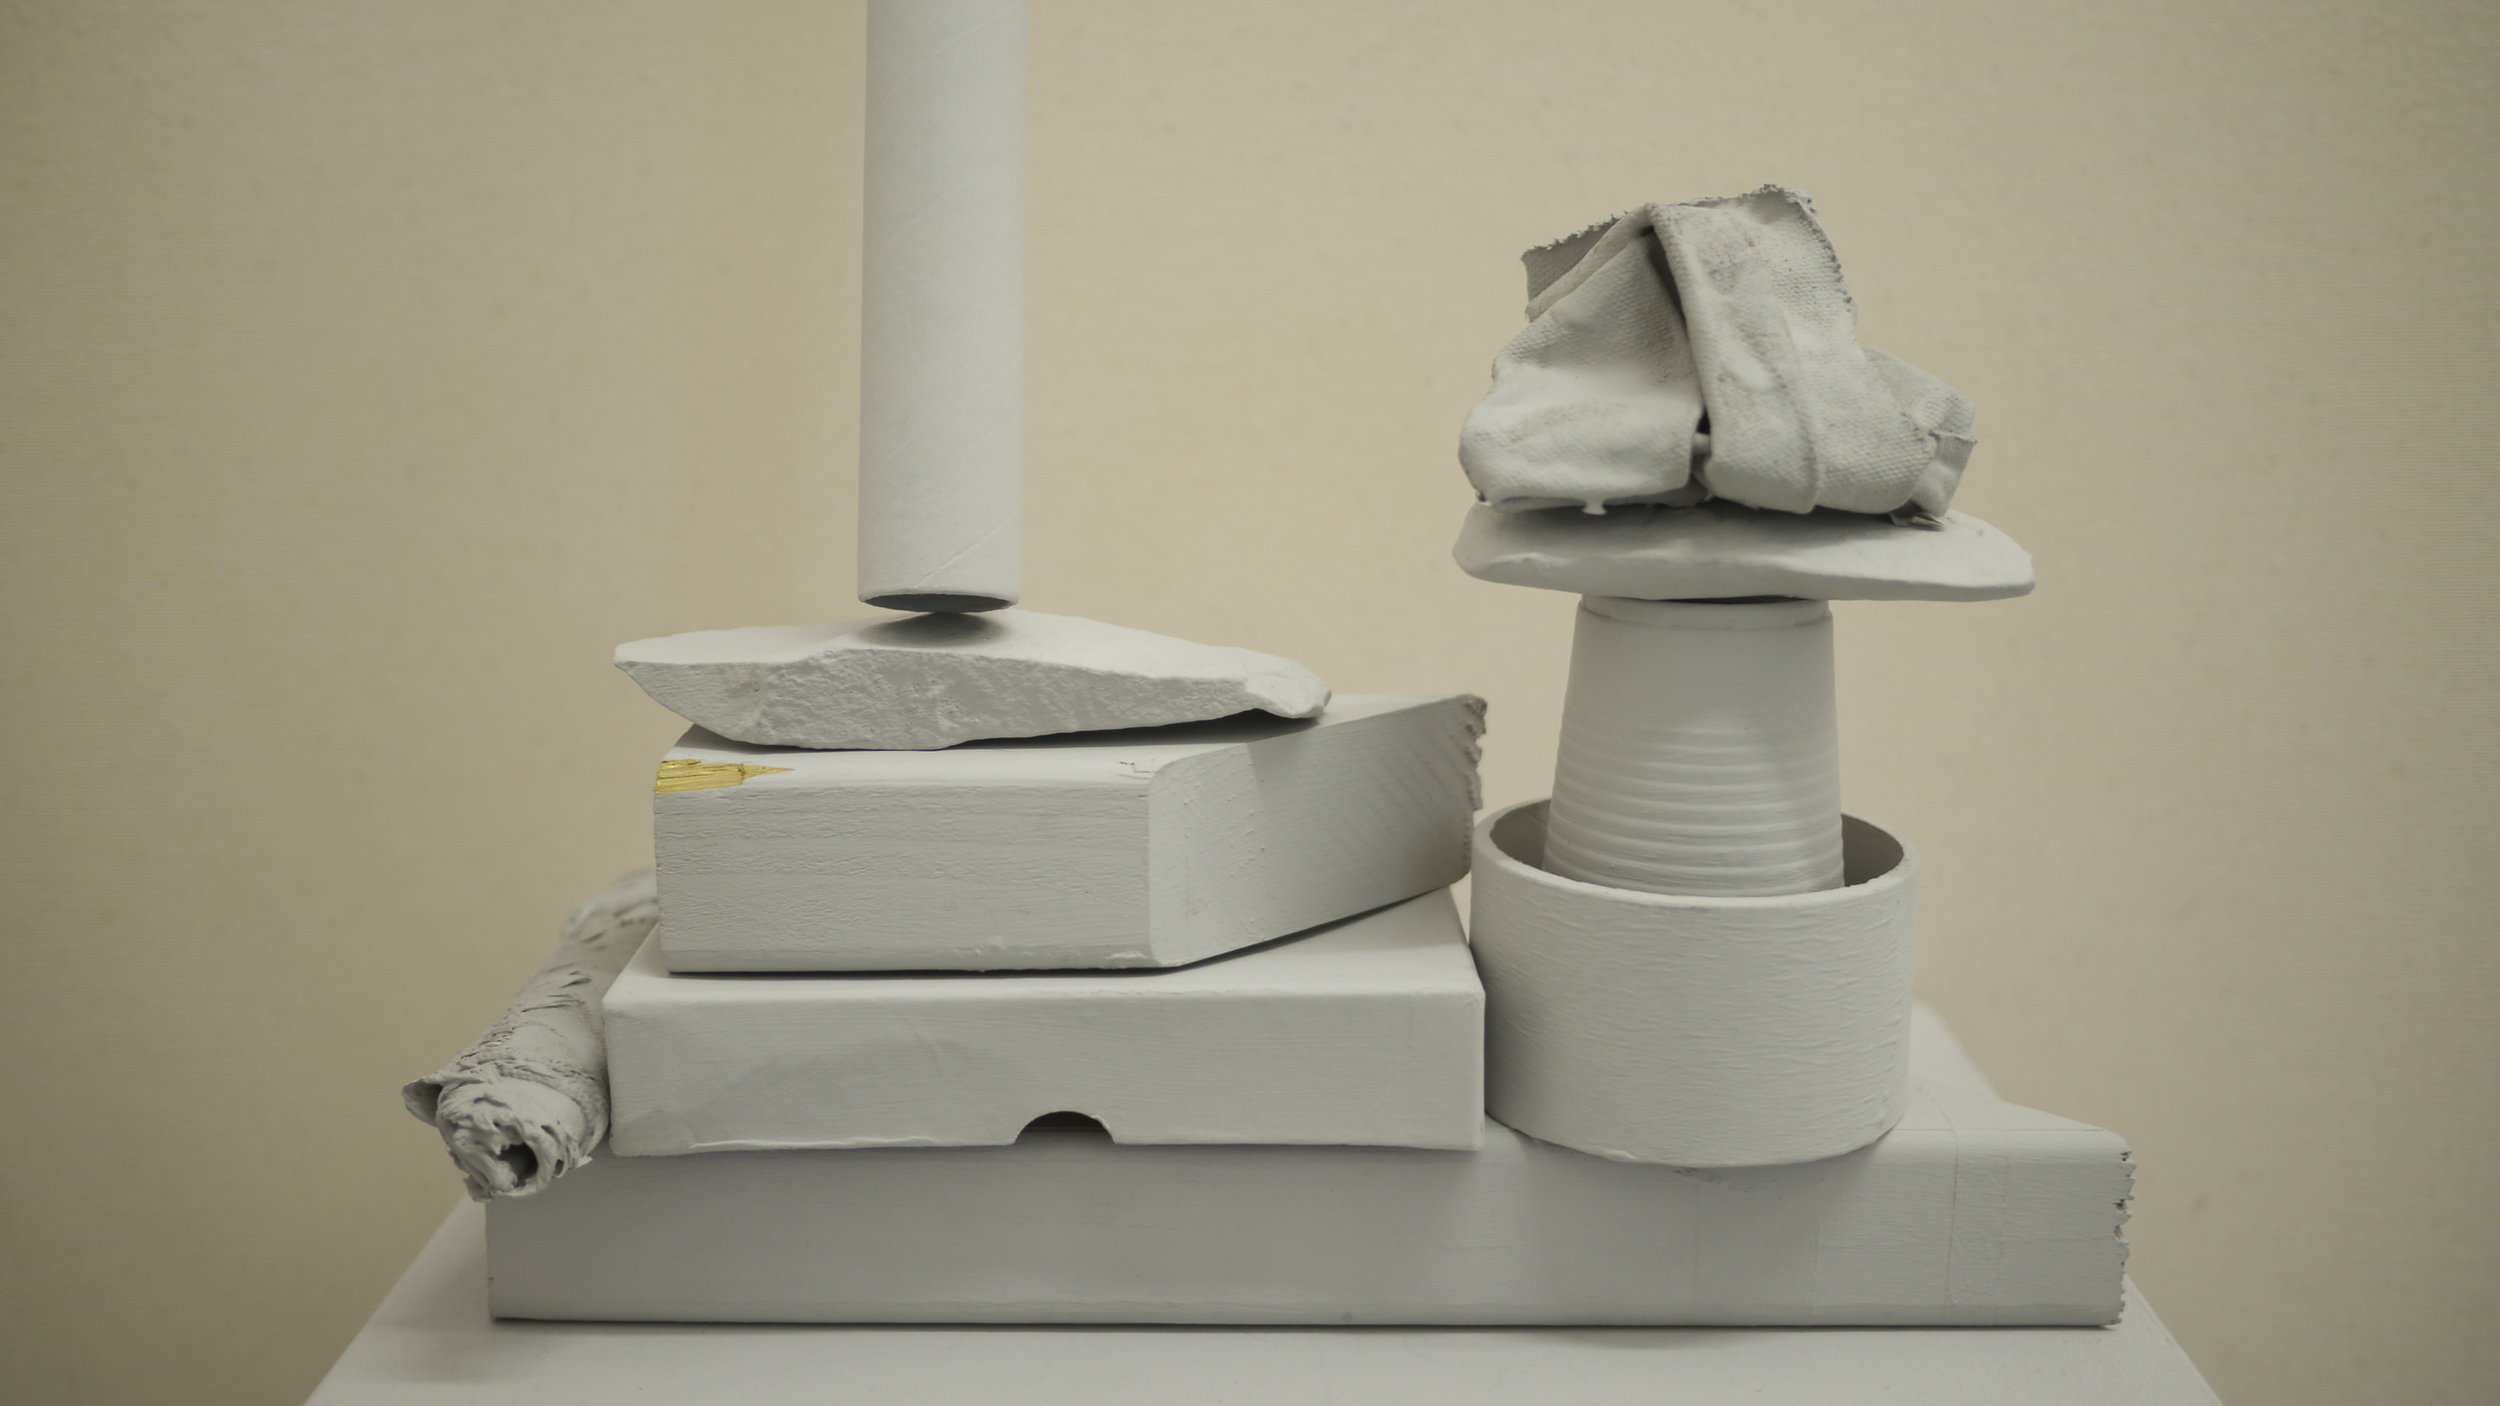 Ally McGinn (2017) The equalising qualities of grey painting [Studio view].  Objects of various values, purposes and associations, equalised through process and a reduction of their primary qualities.